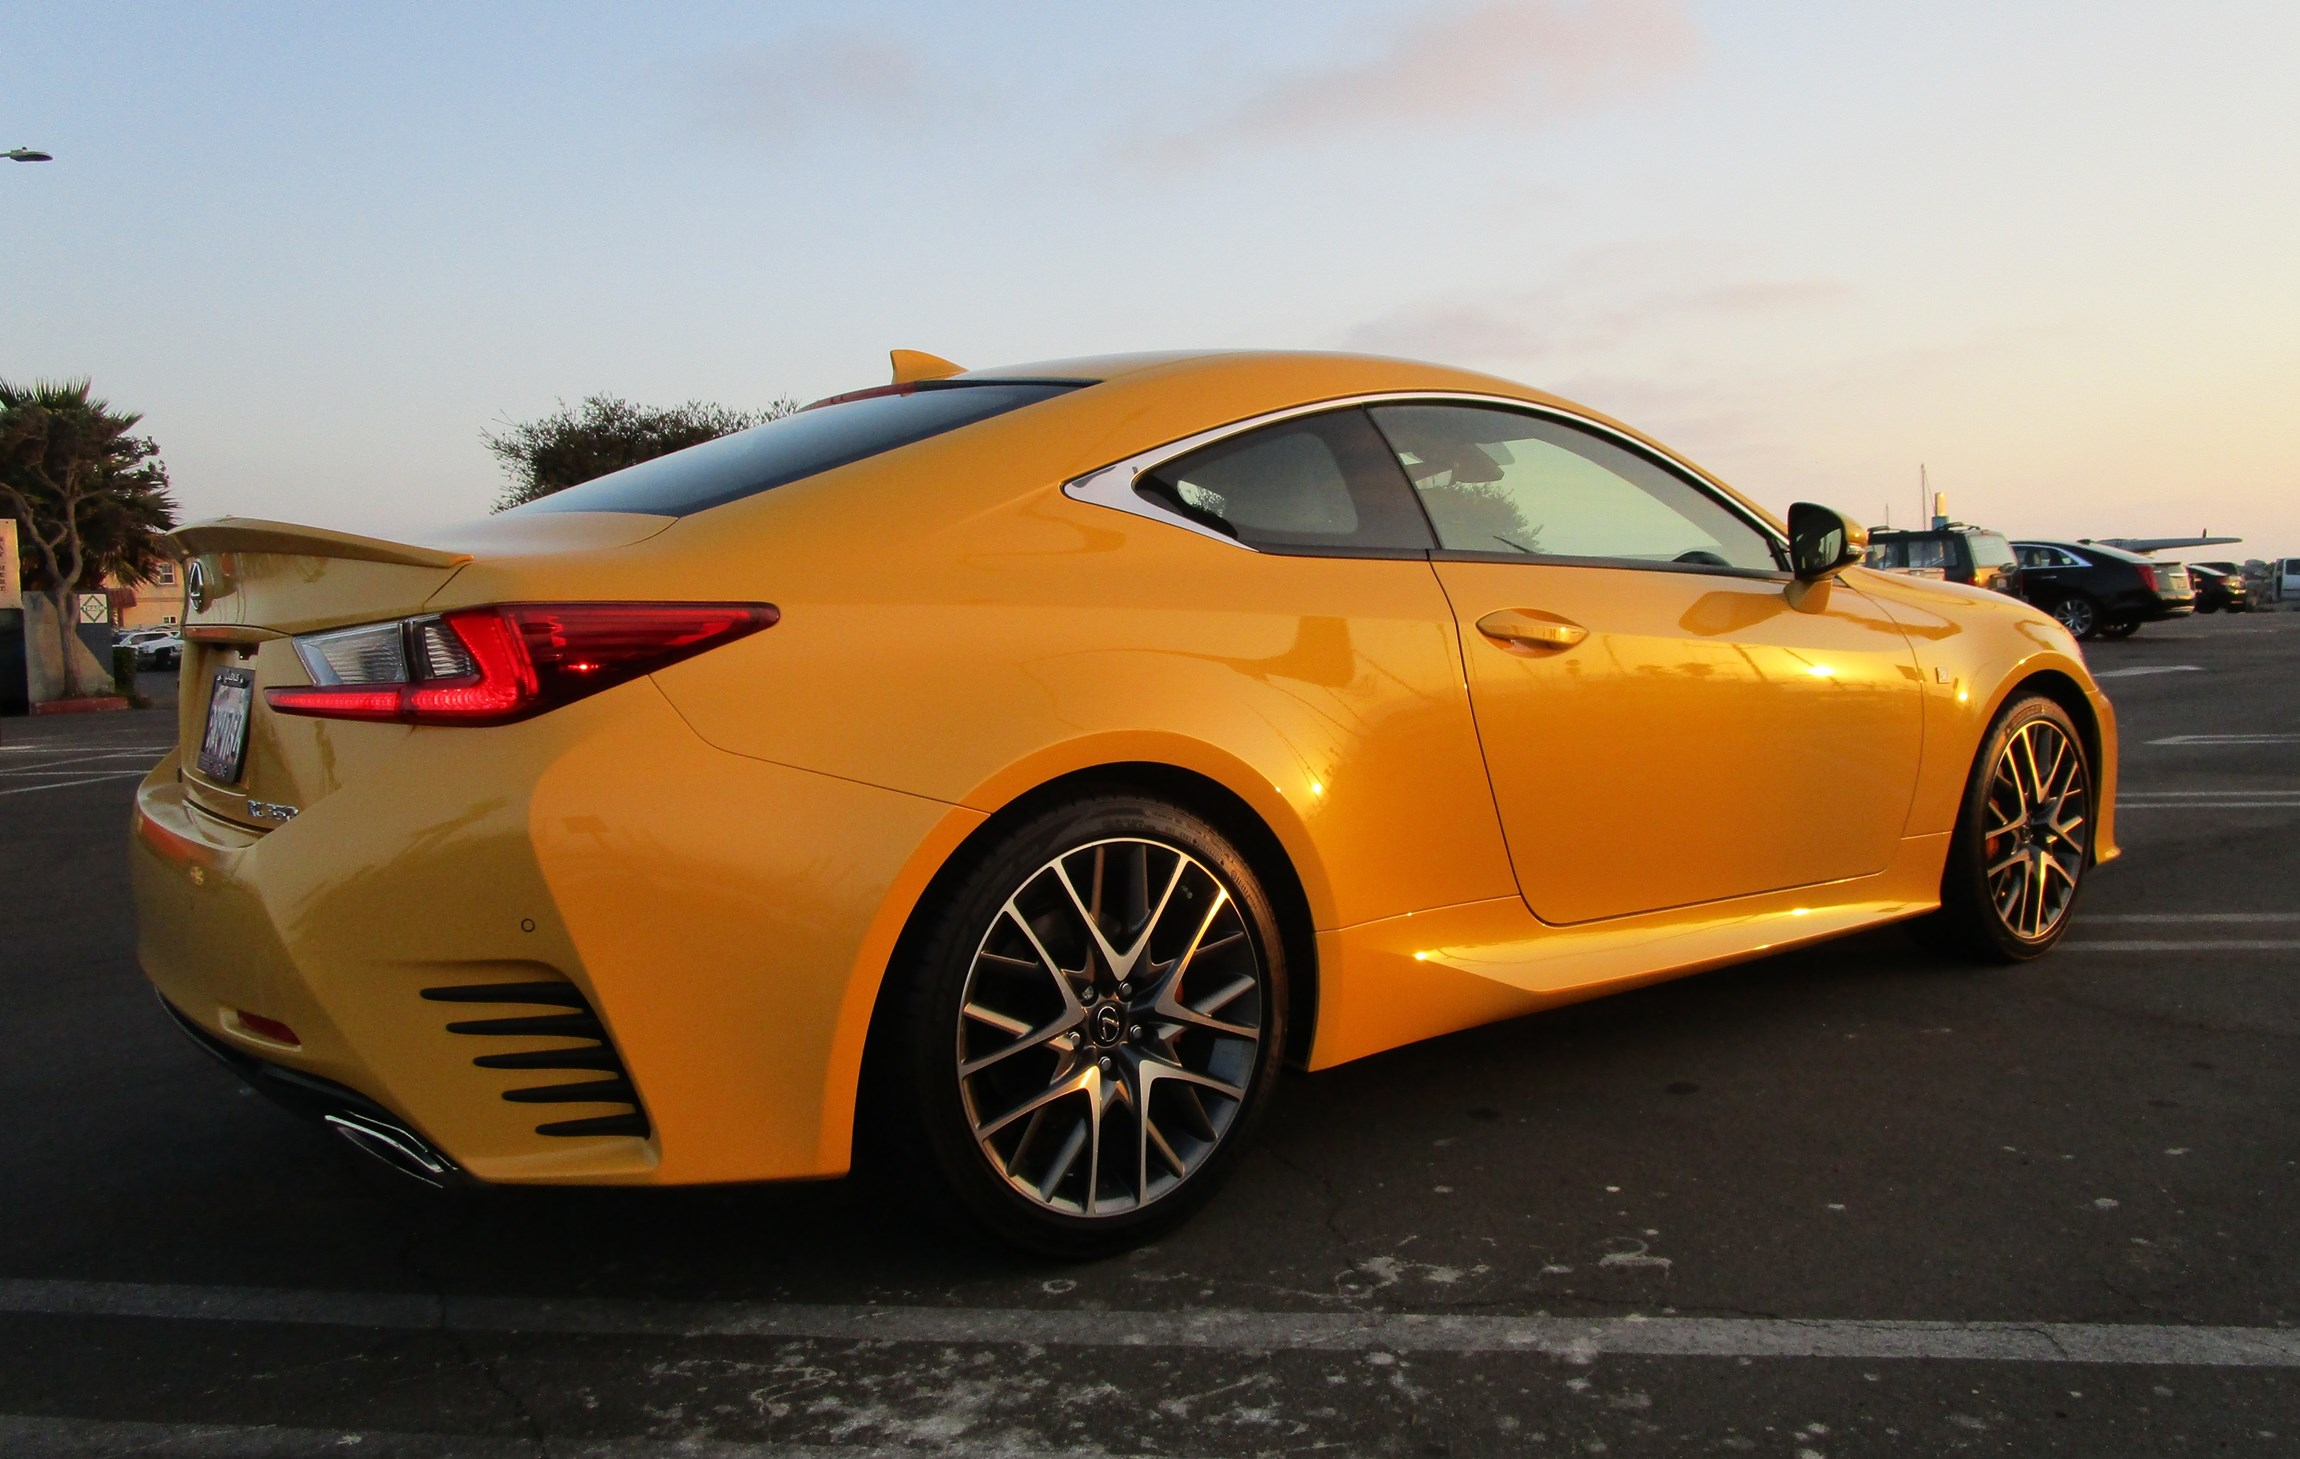 Lexus Sport Coupe >> 2018 Lexus RC350 F Sport - Road Test Review - By Ben Lewis